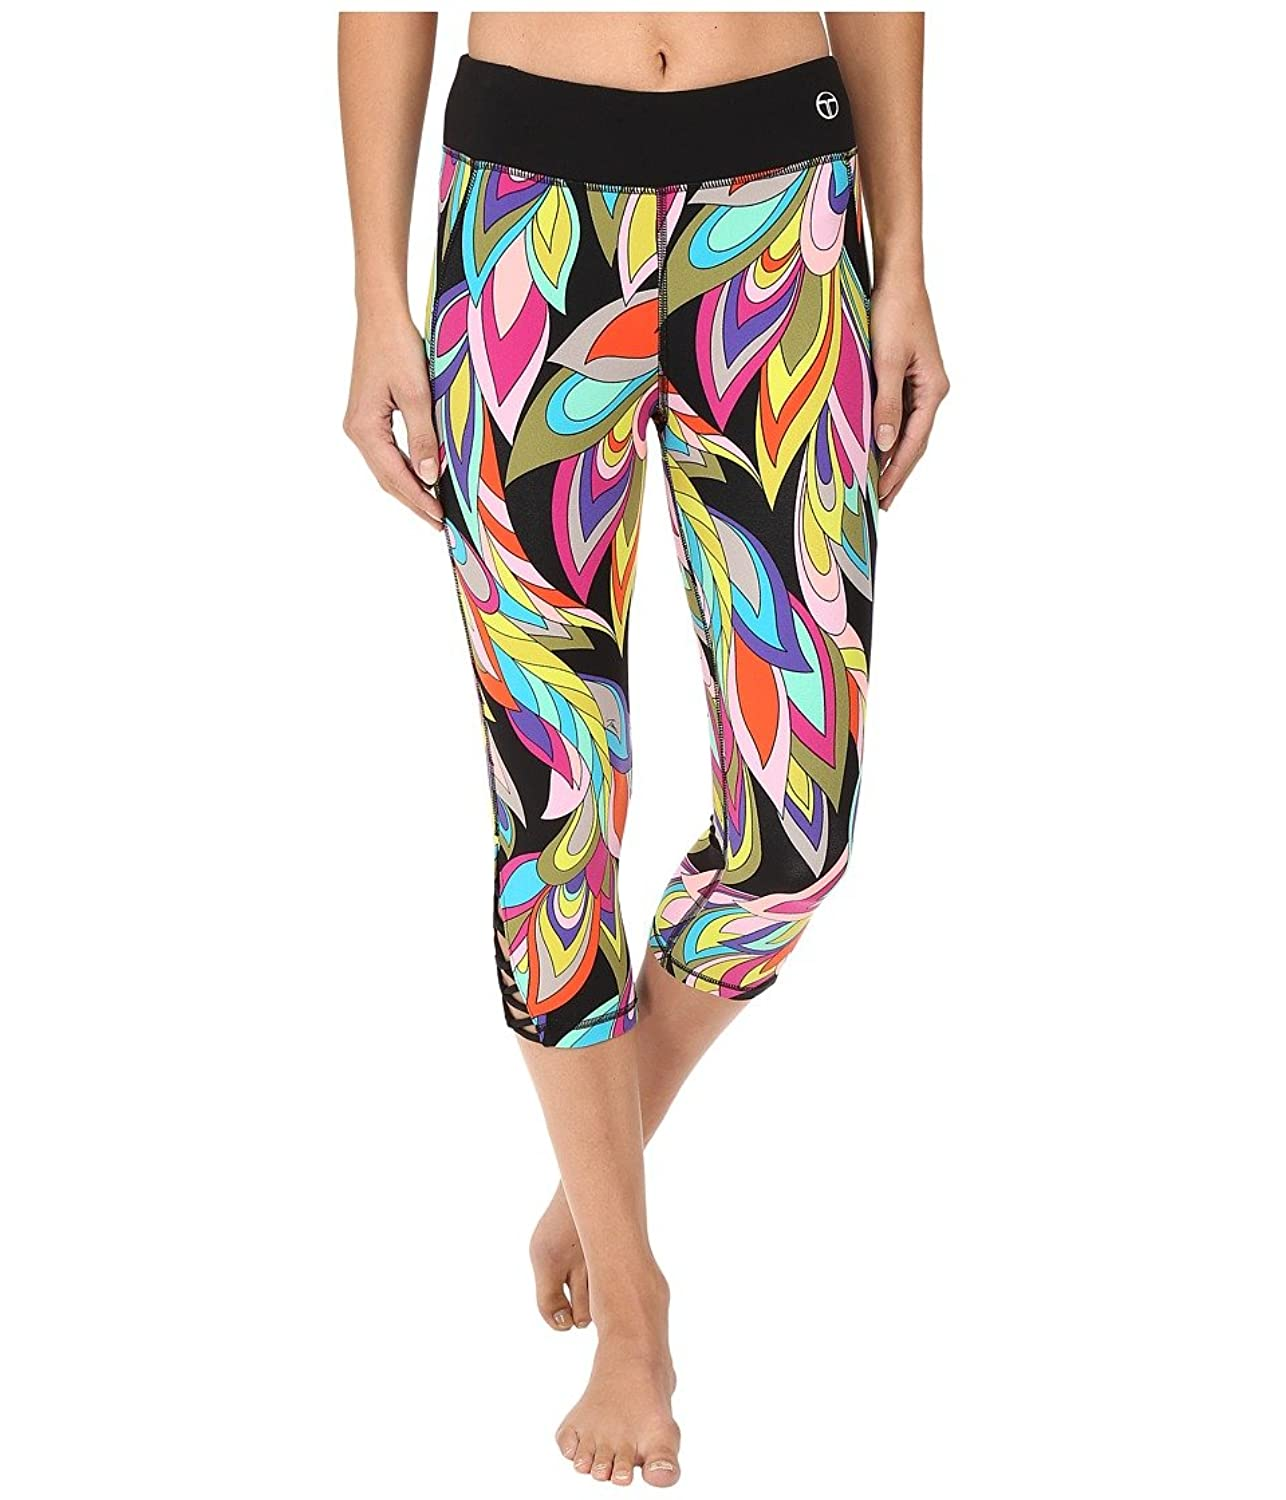 Trina Turk Women's Copa Cabana Mid-Length Leggings